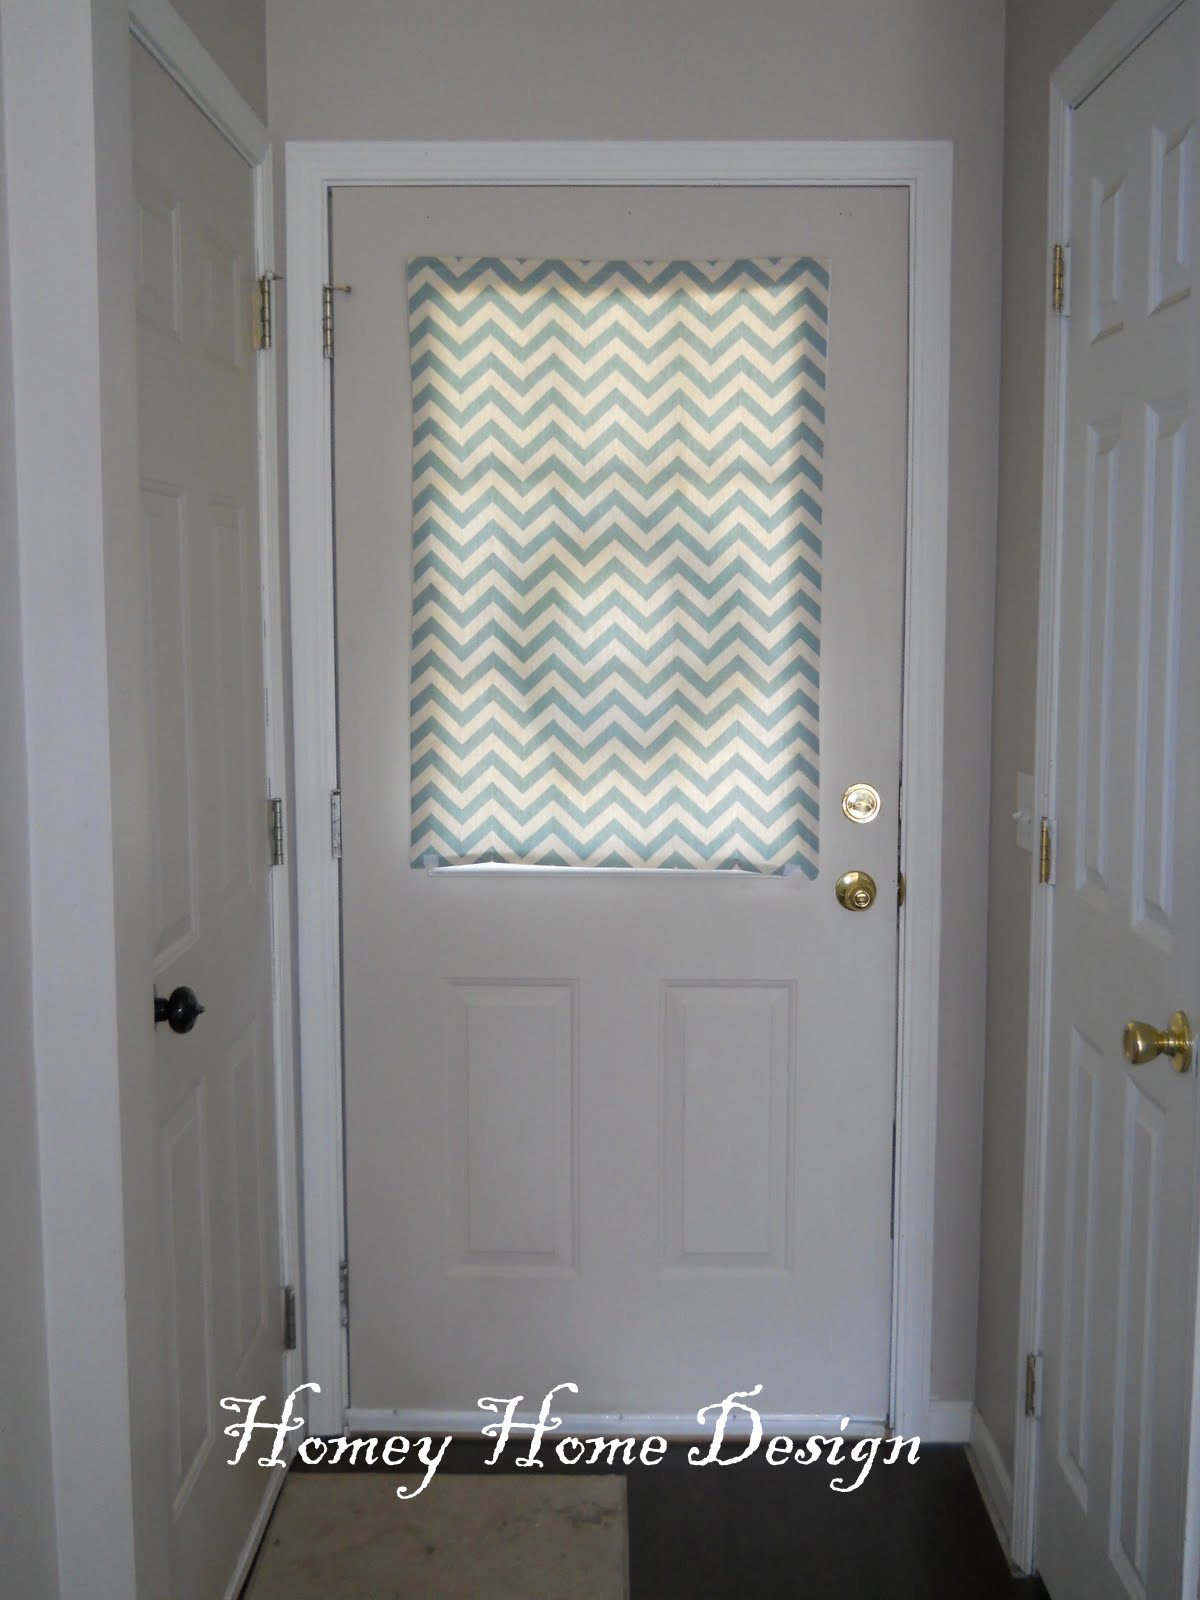 homey home design Entryway Update and a few fun projects